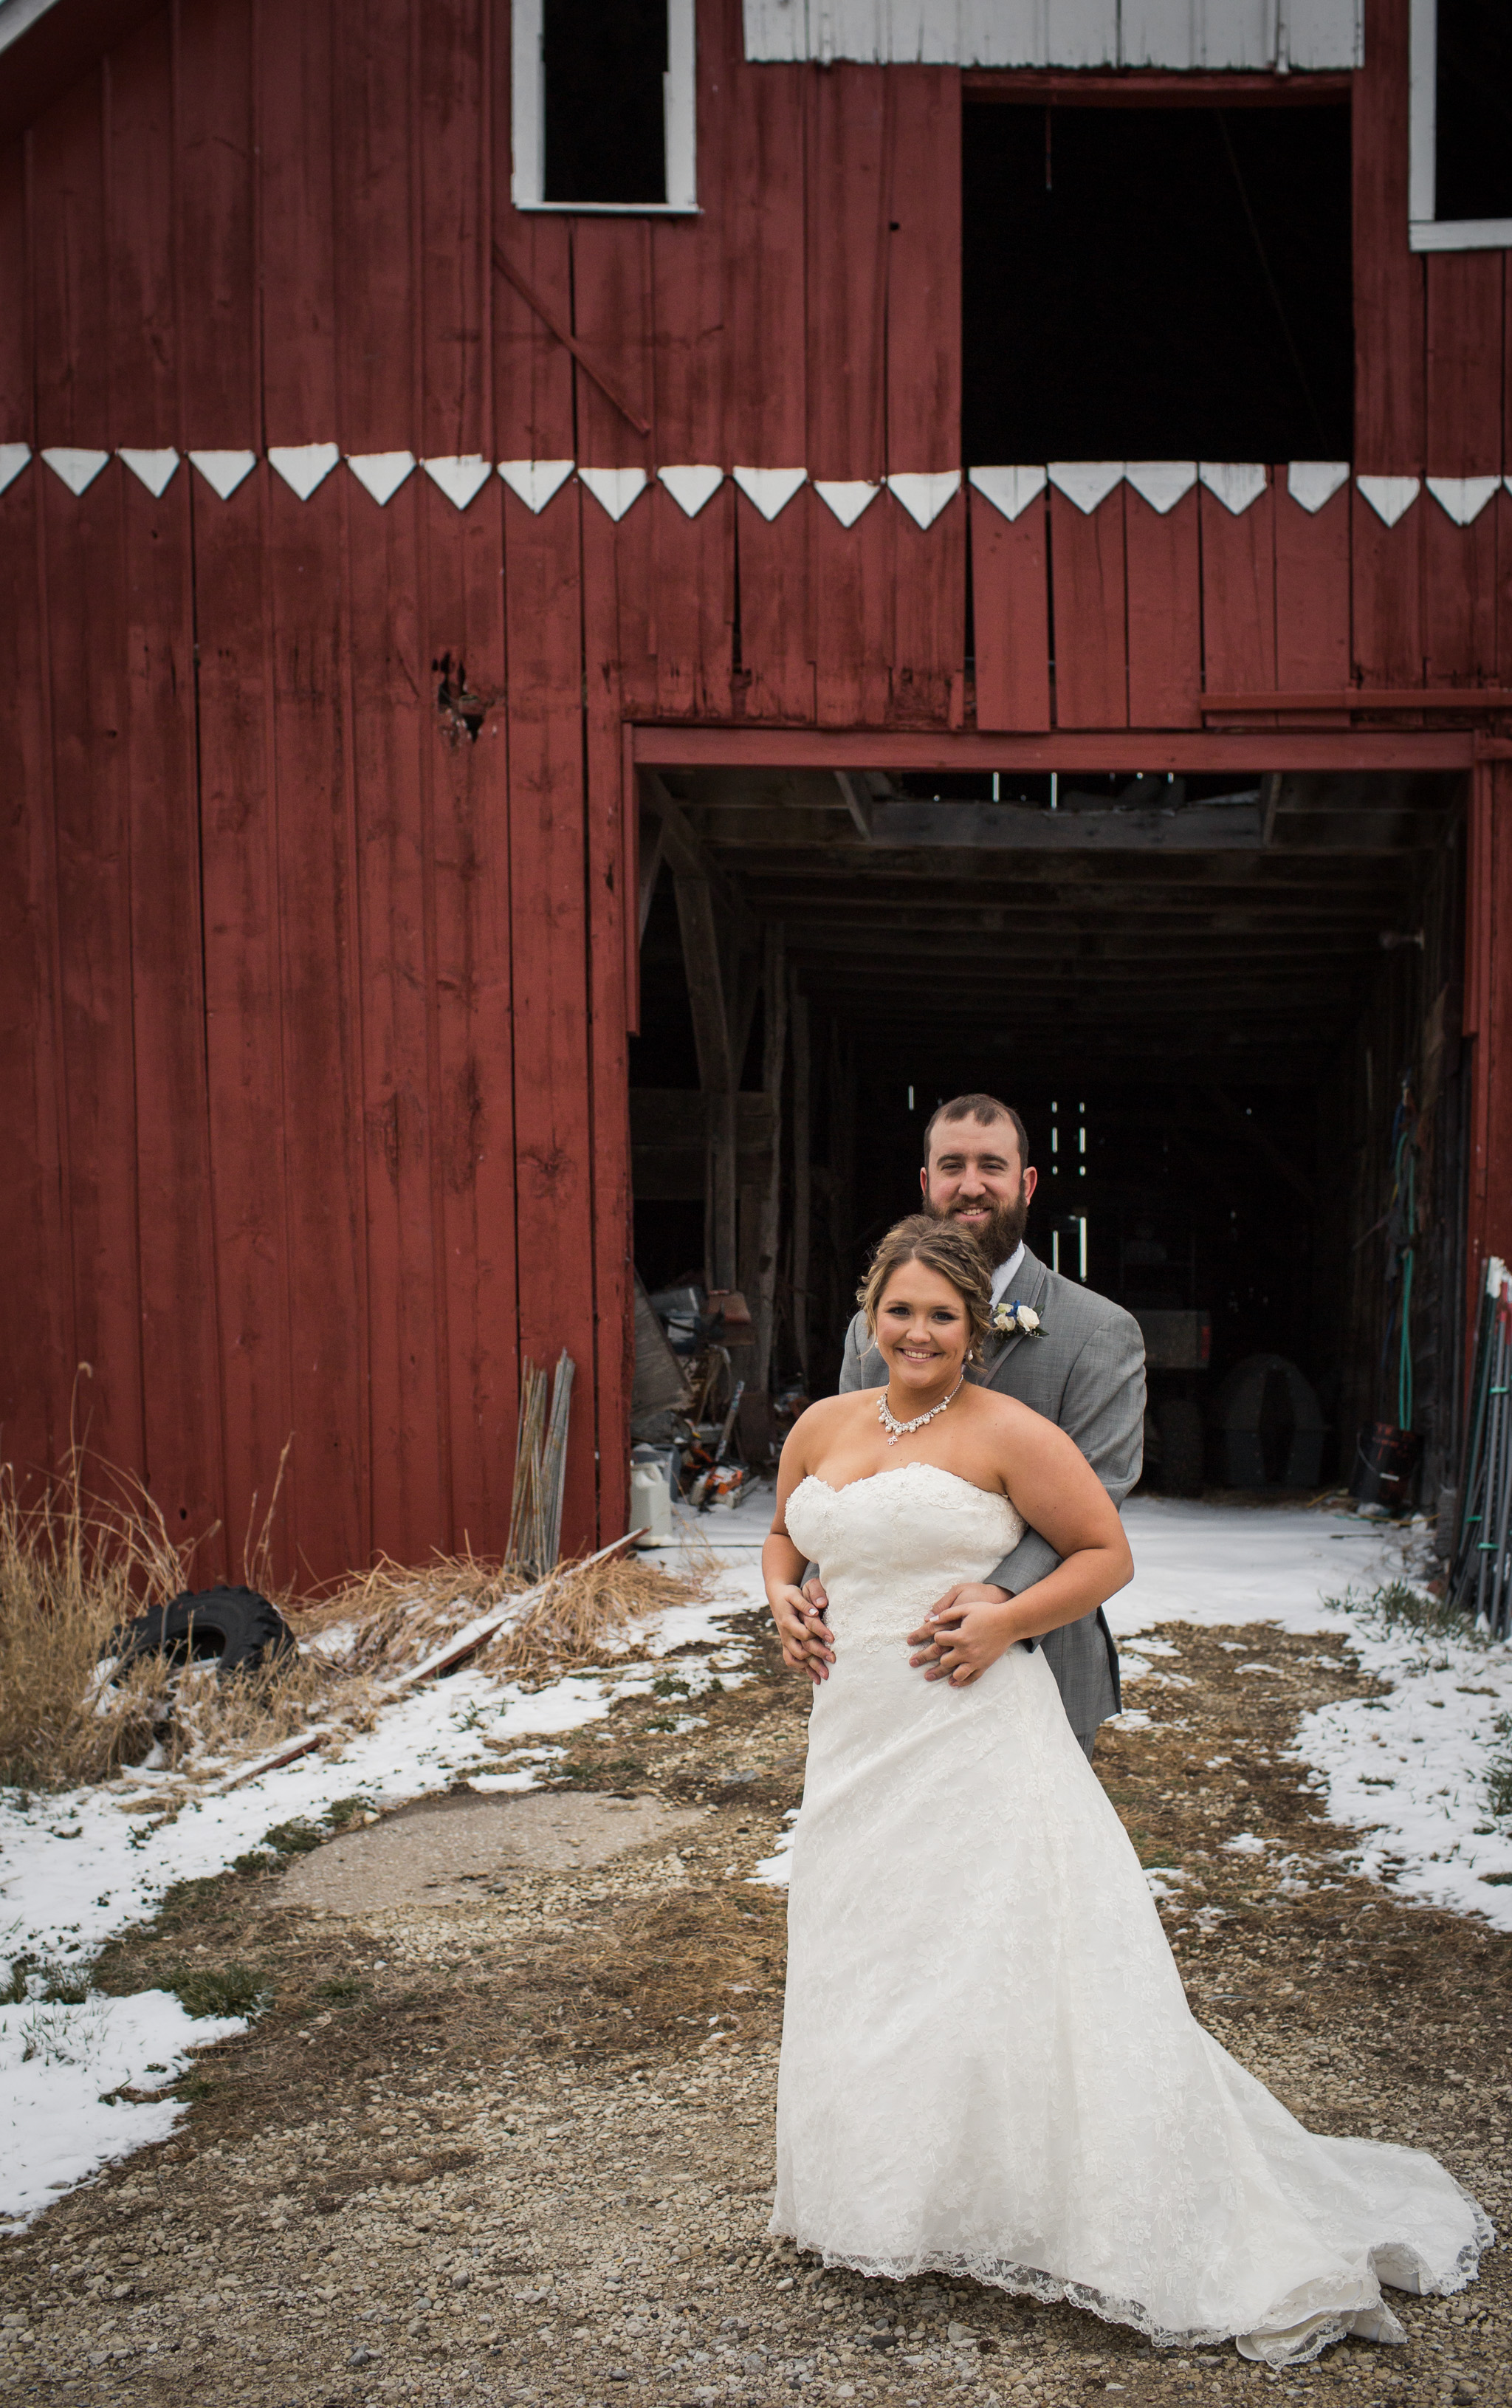 Zibell Spring Wedding, Bride and Groom, Powerful, Connected, Exploration, Laura Duggleby Photography -103.JPG